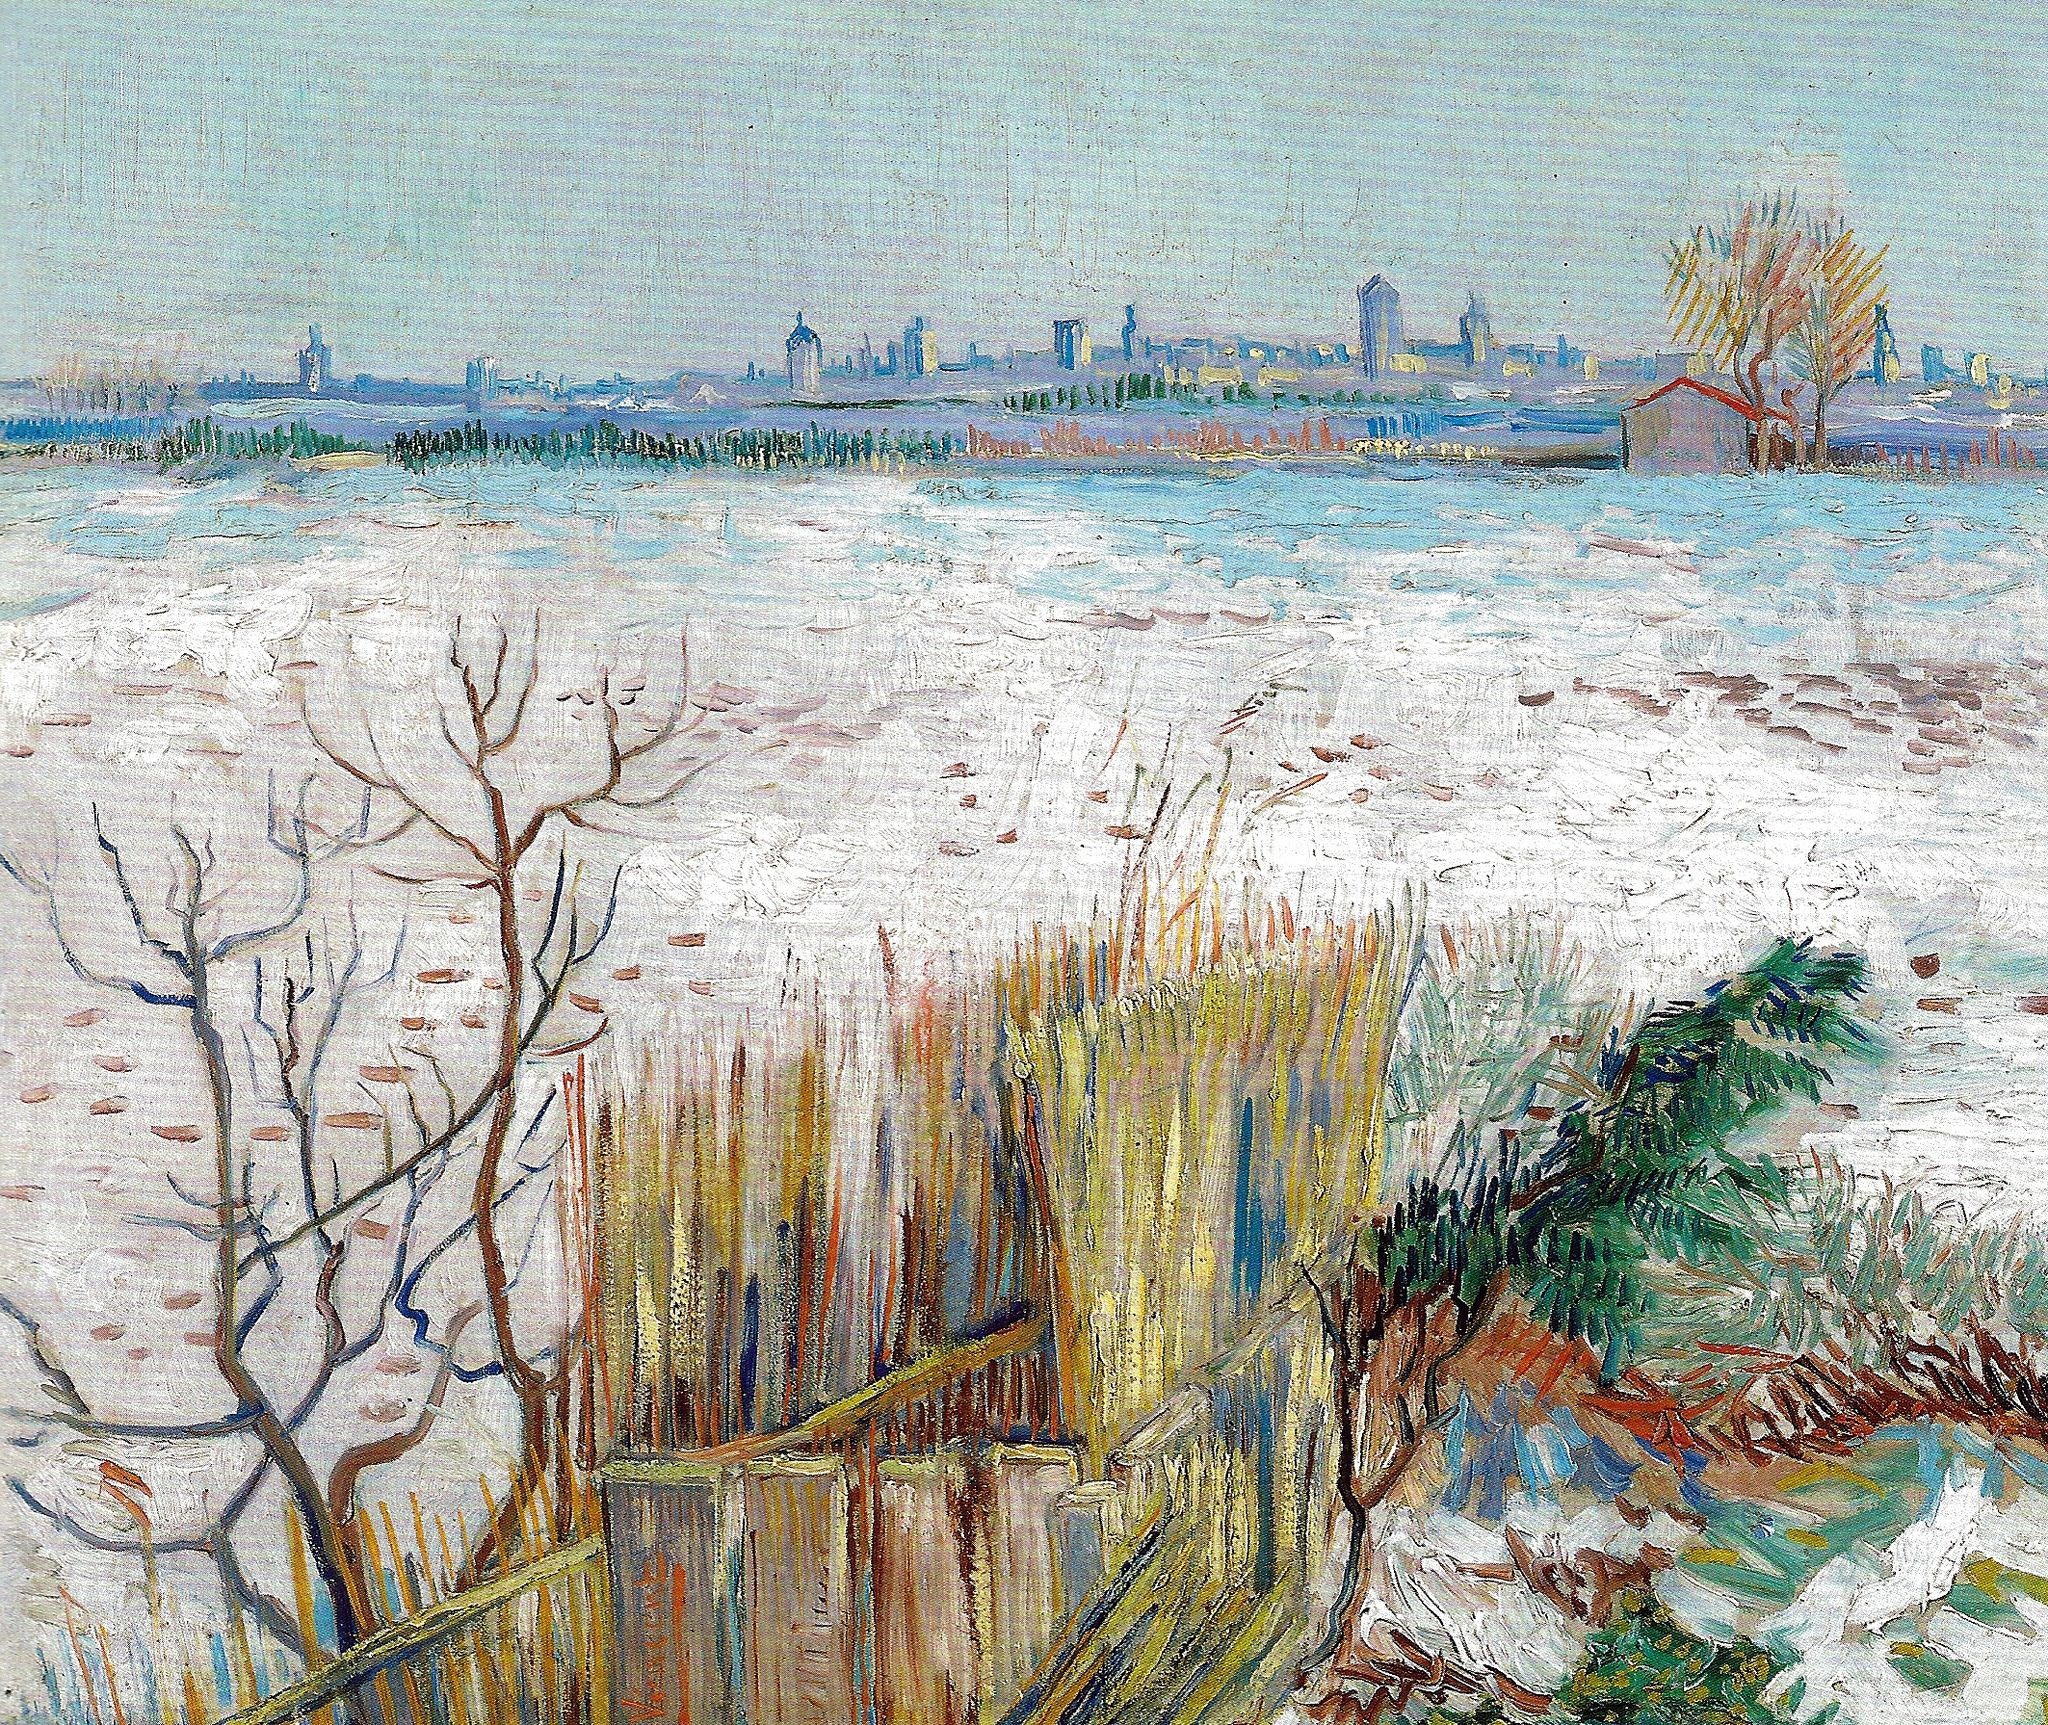 https://flic.kr/p/cVEx6E | Vincent van Gogh - Snowy Landscape with Arles in the Background, 1888 (Private Collection) Van Gogh: Up Close at Philadelphia Museum of Art | Vincent van Gogh - Snowy Landscape with Arles in the Background, 1888 (Private Collection) Van Gogh: Up Close at Philadelphia Museum of Art (Postcard)